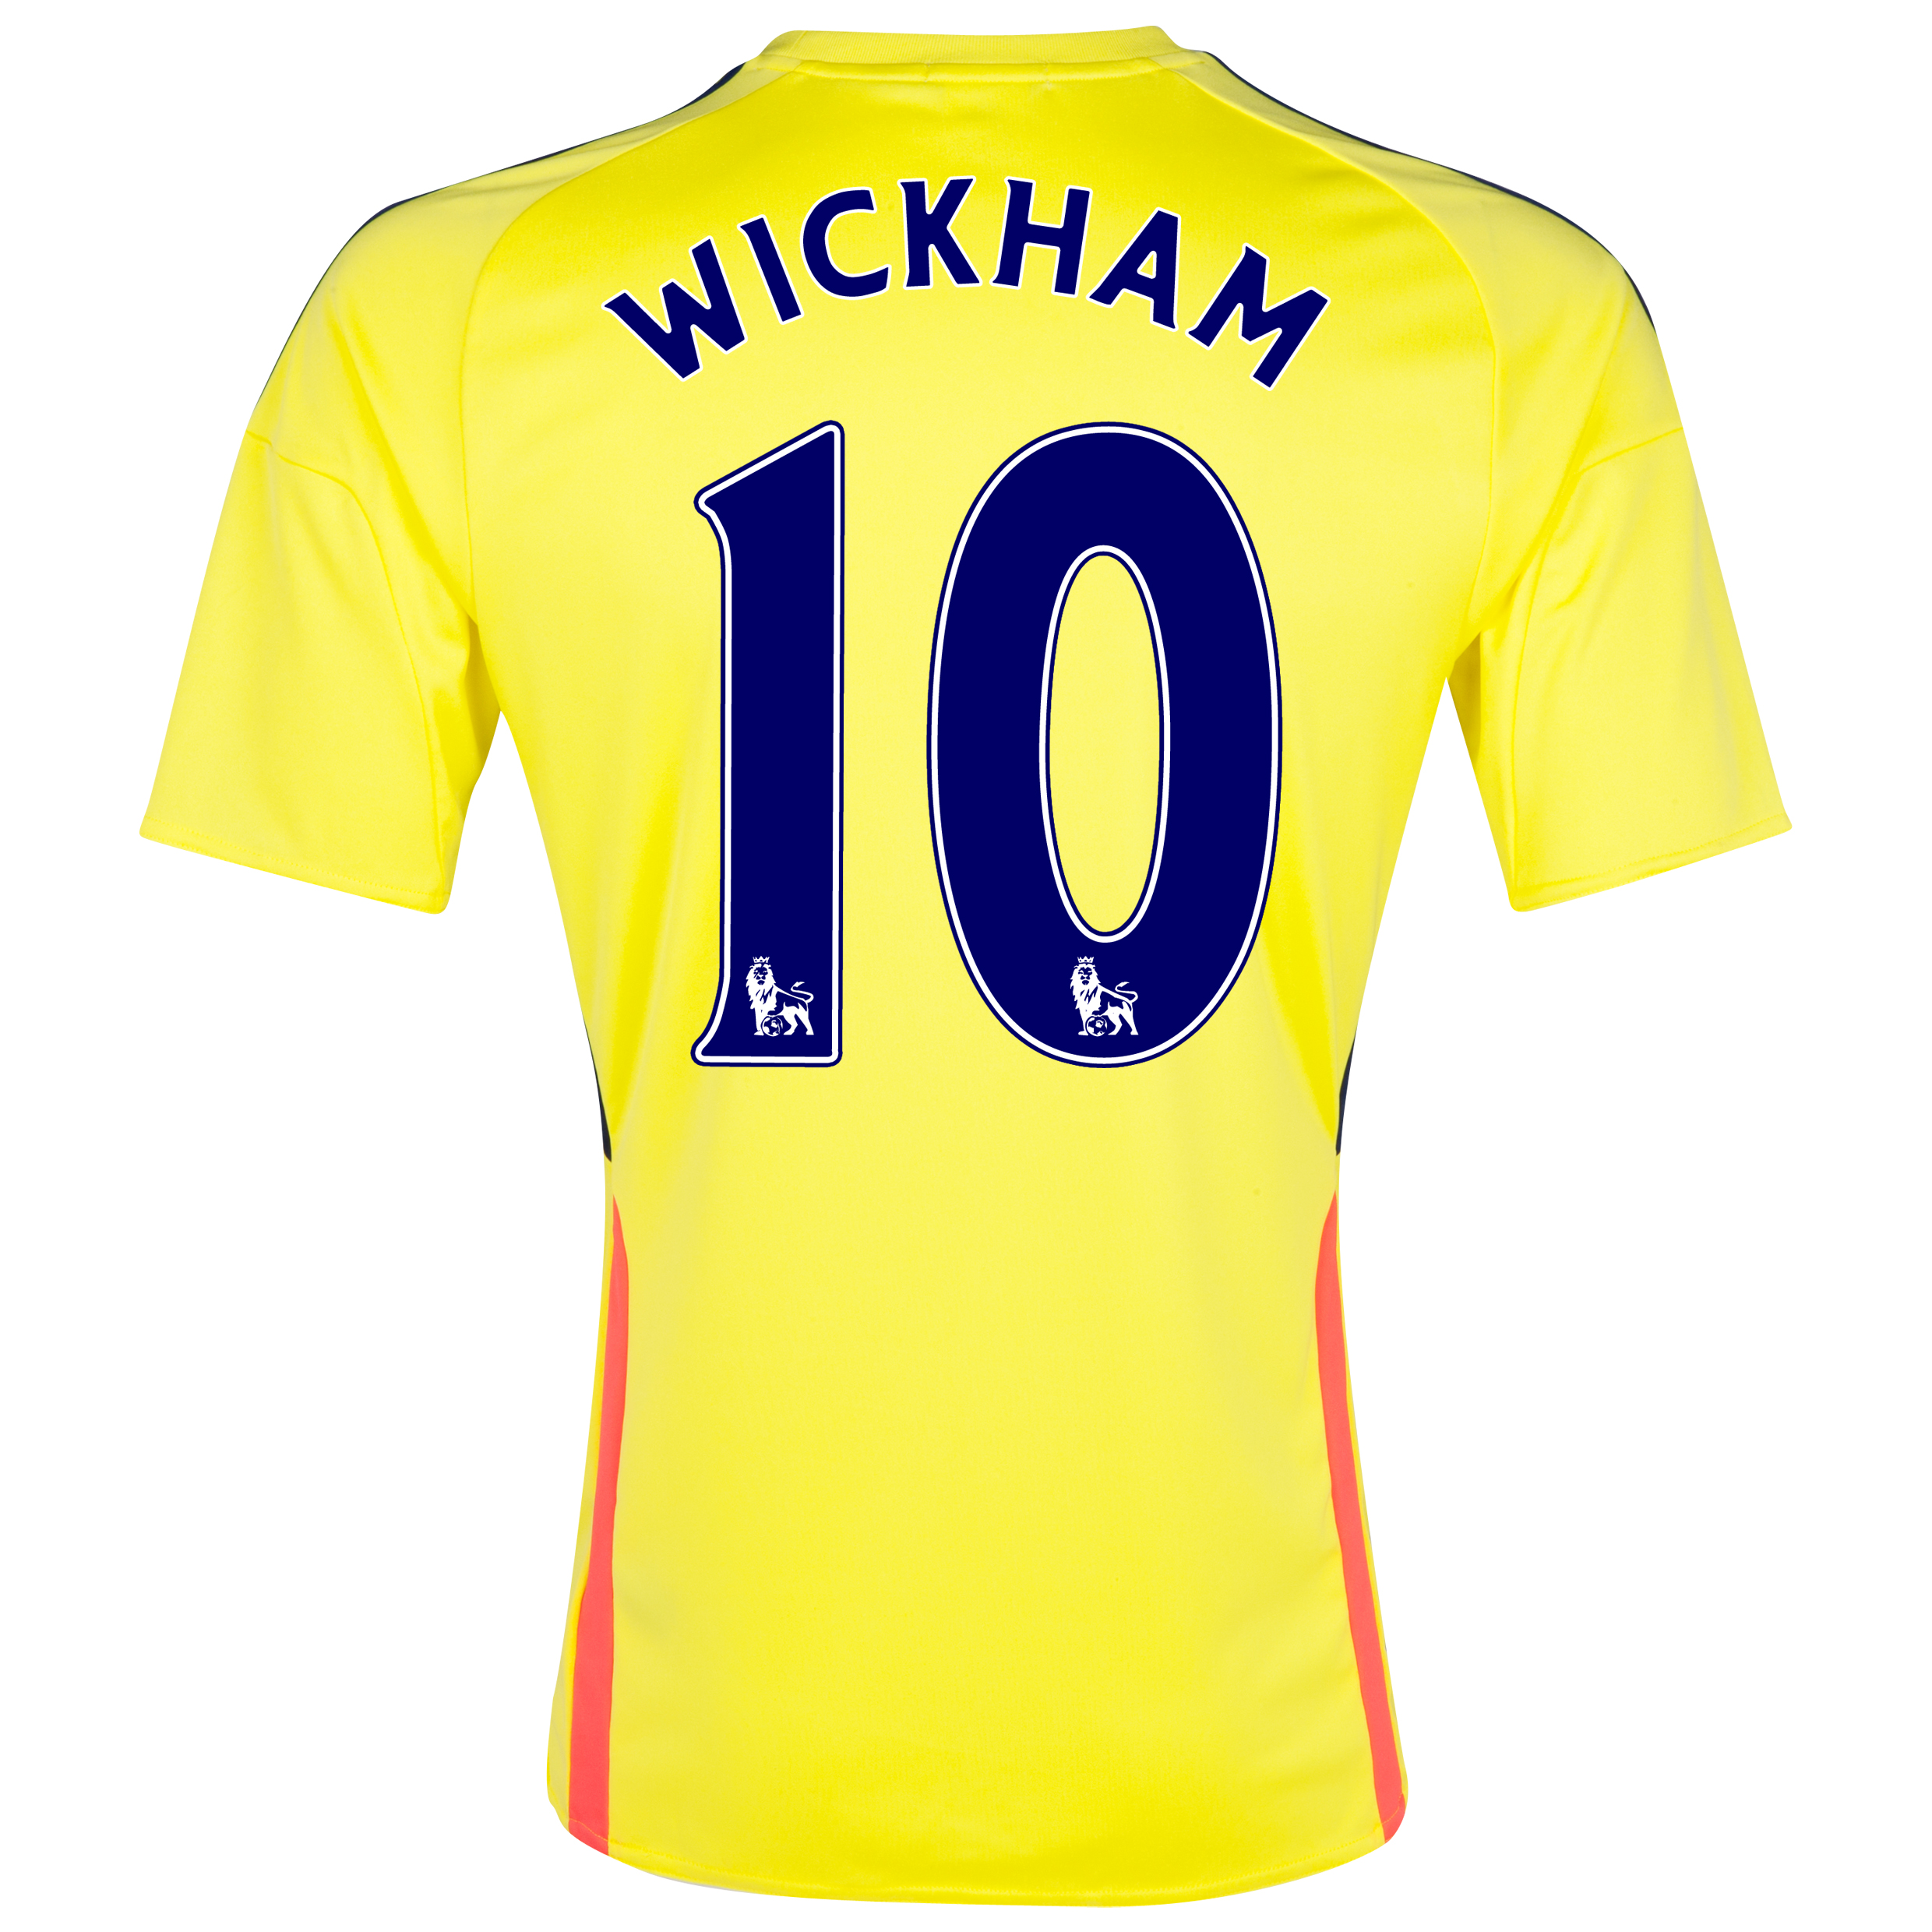 Sunderland Away Shirt 2013/14 - Junior with Wickham 10 printing